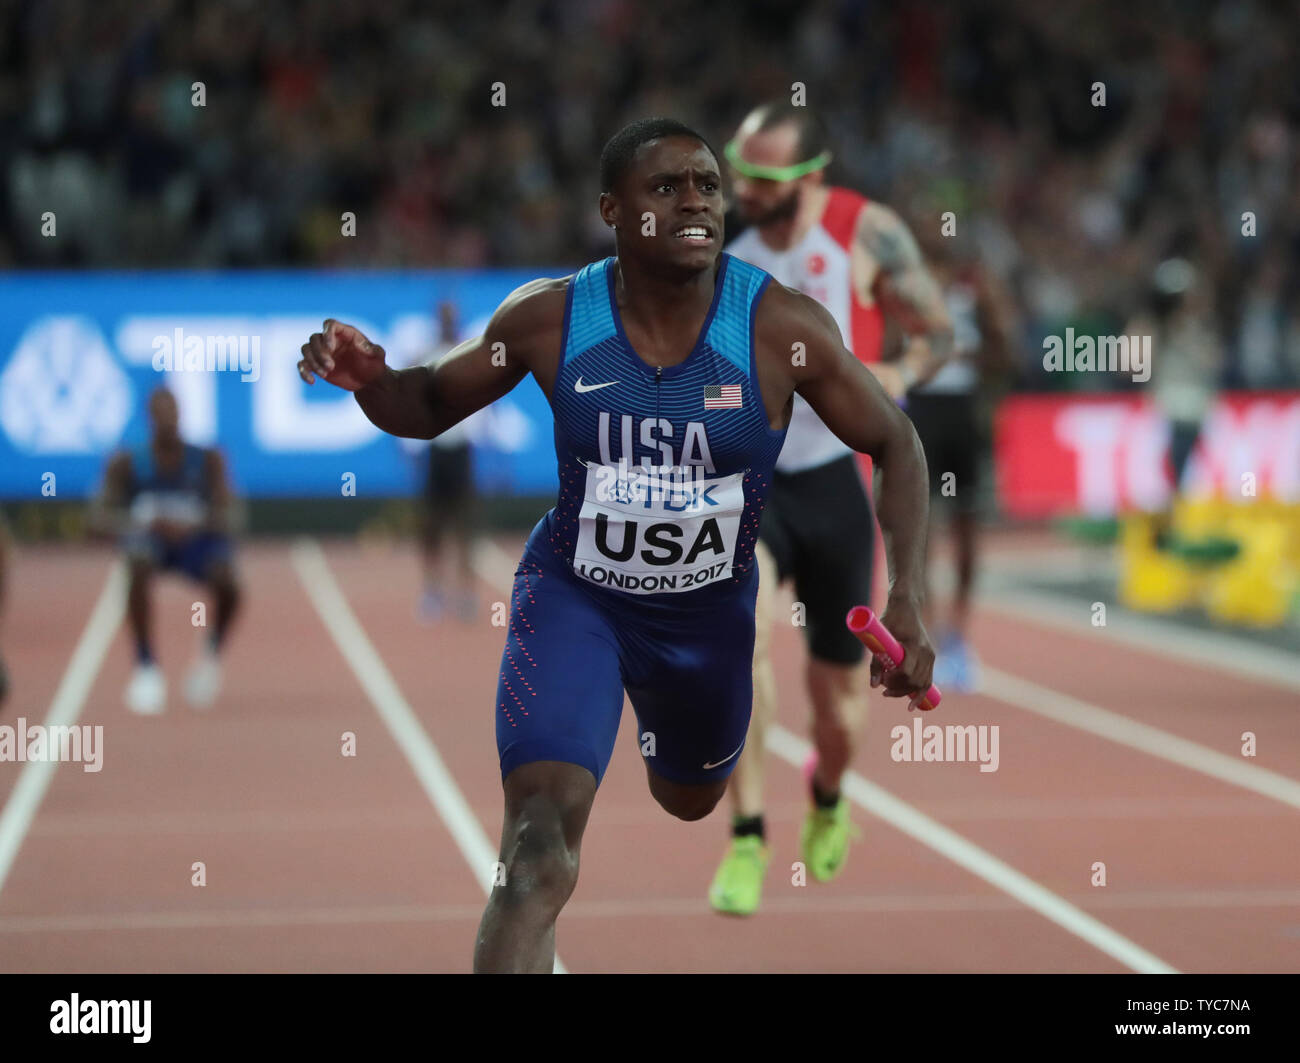 American Christian Coleman finishes in Silver position in the Men's 4 x 100 Metres Relay at the 2017 IAAF World Athletics Championships at the Olympic Stadium, London on August 12, 2017.    Photo by Hugo Philpott/UPI - Stock Image